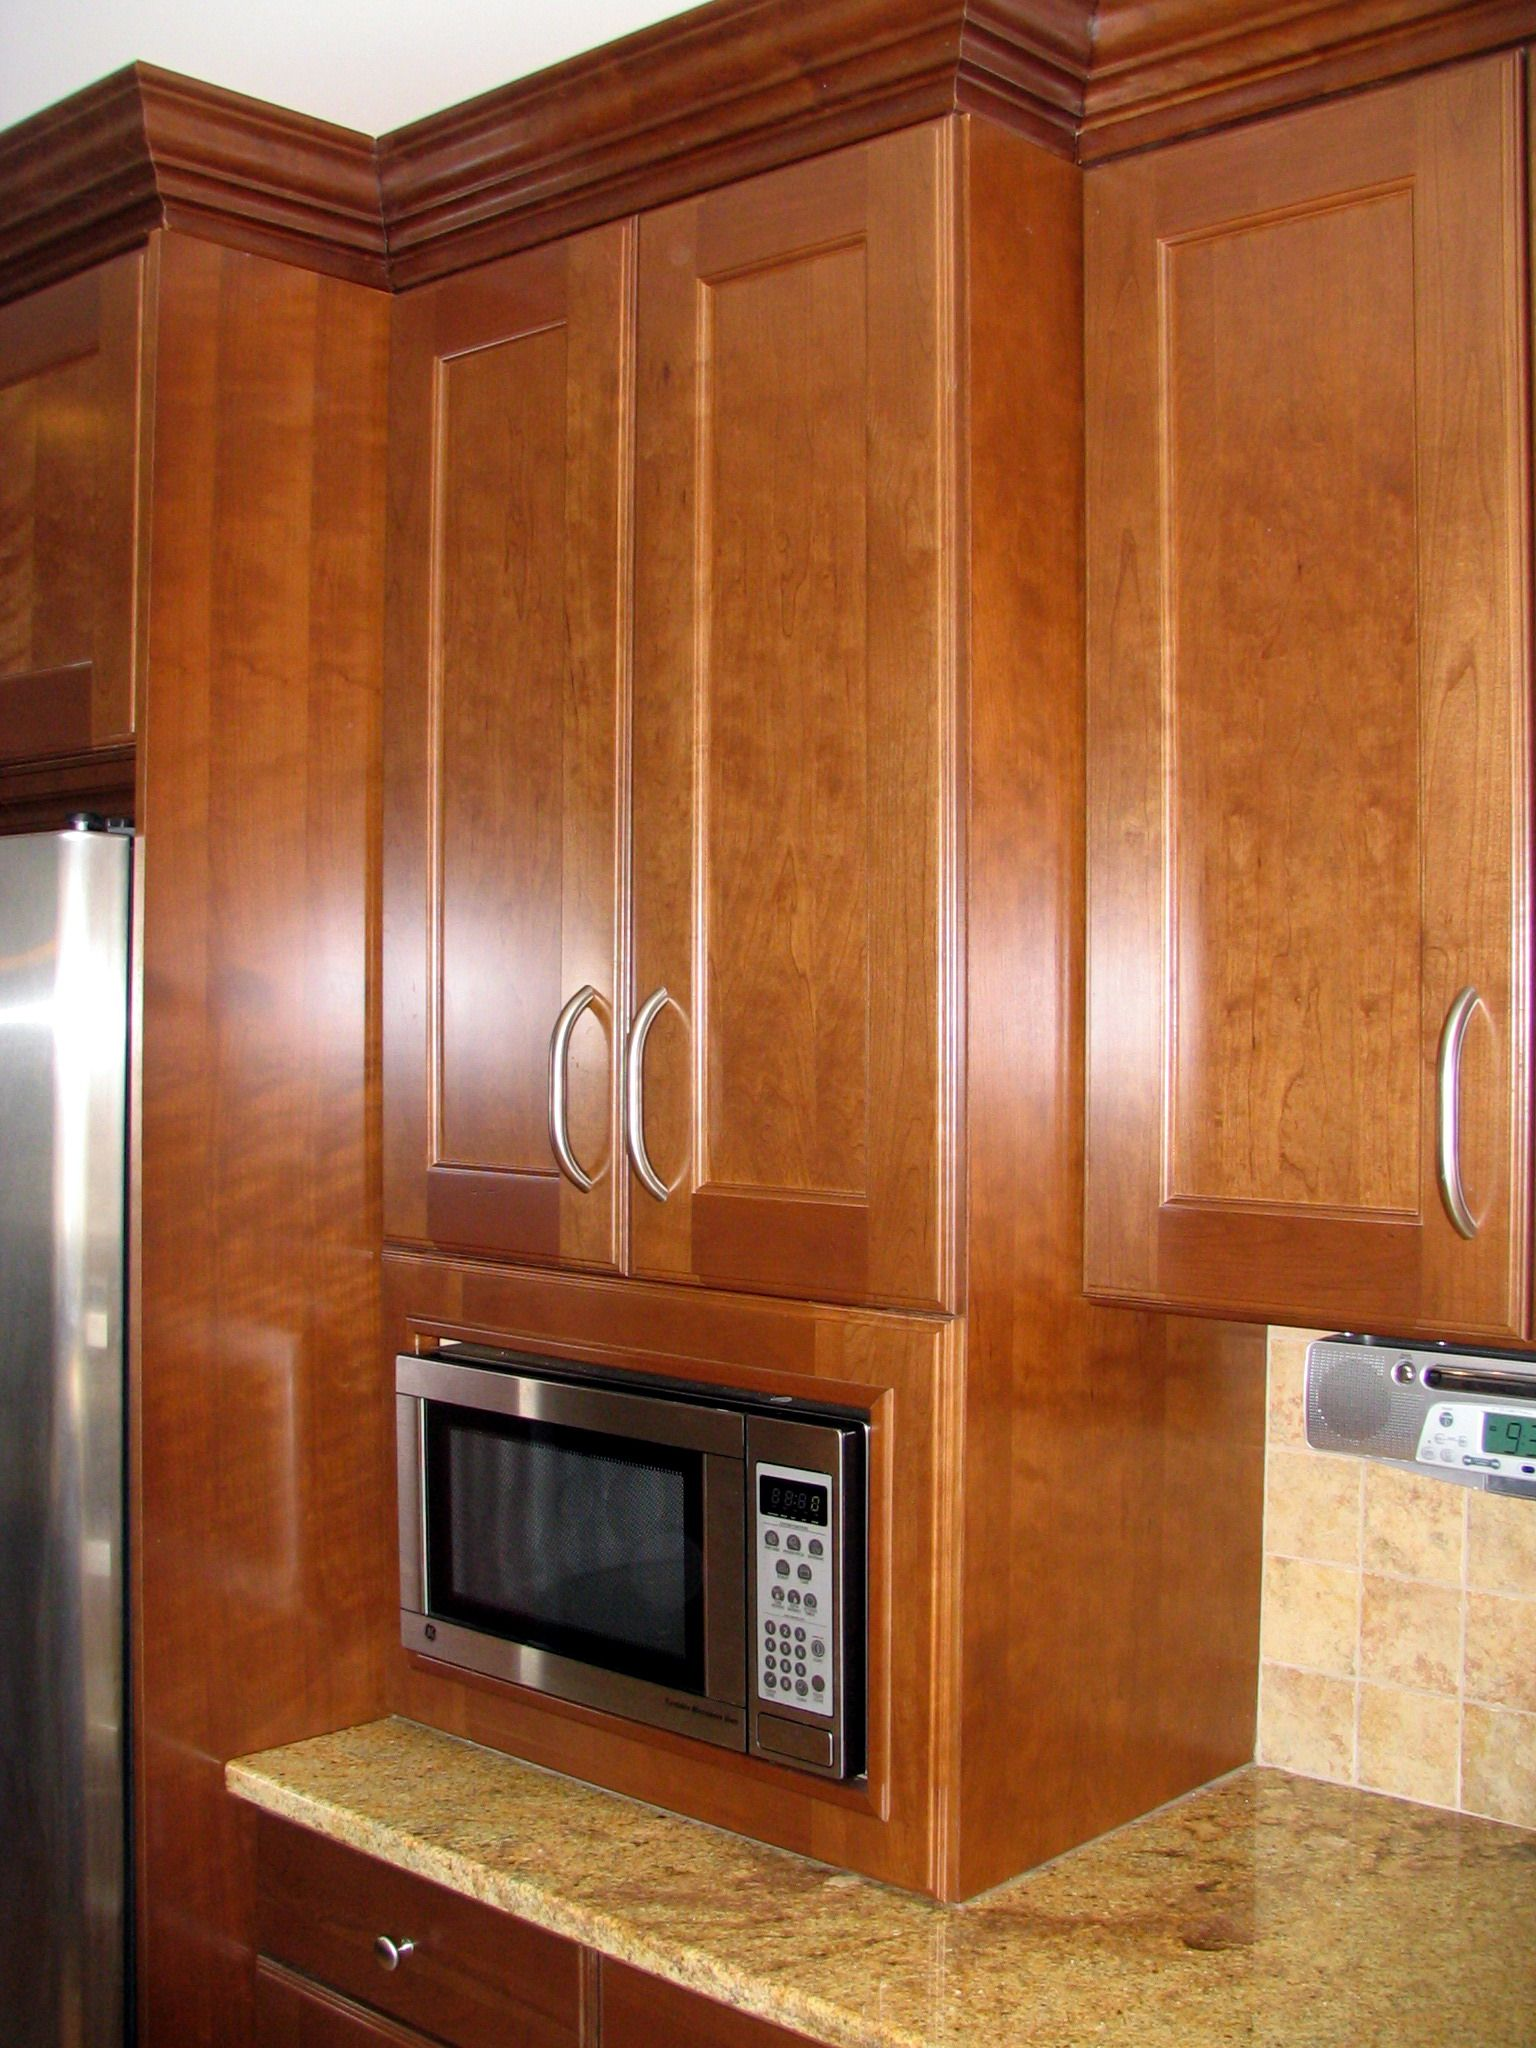 Built In Microwave Cabinet To Countertop This Is A Great Height